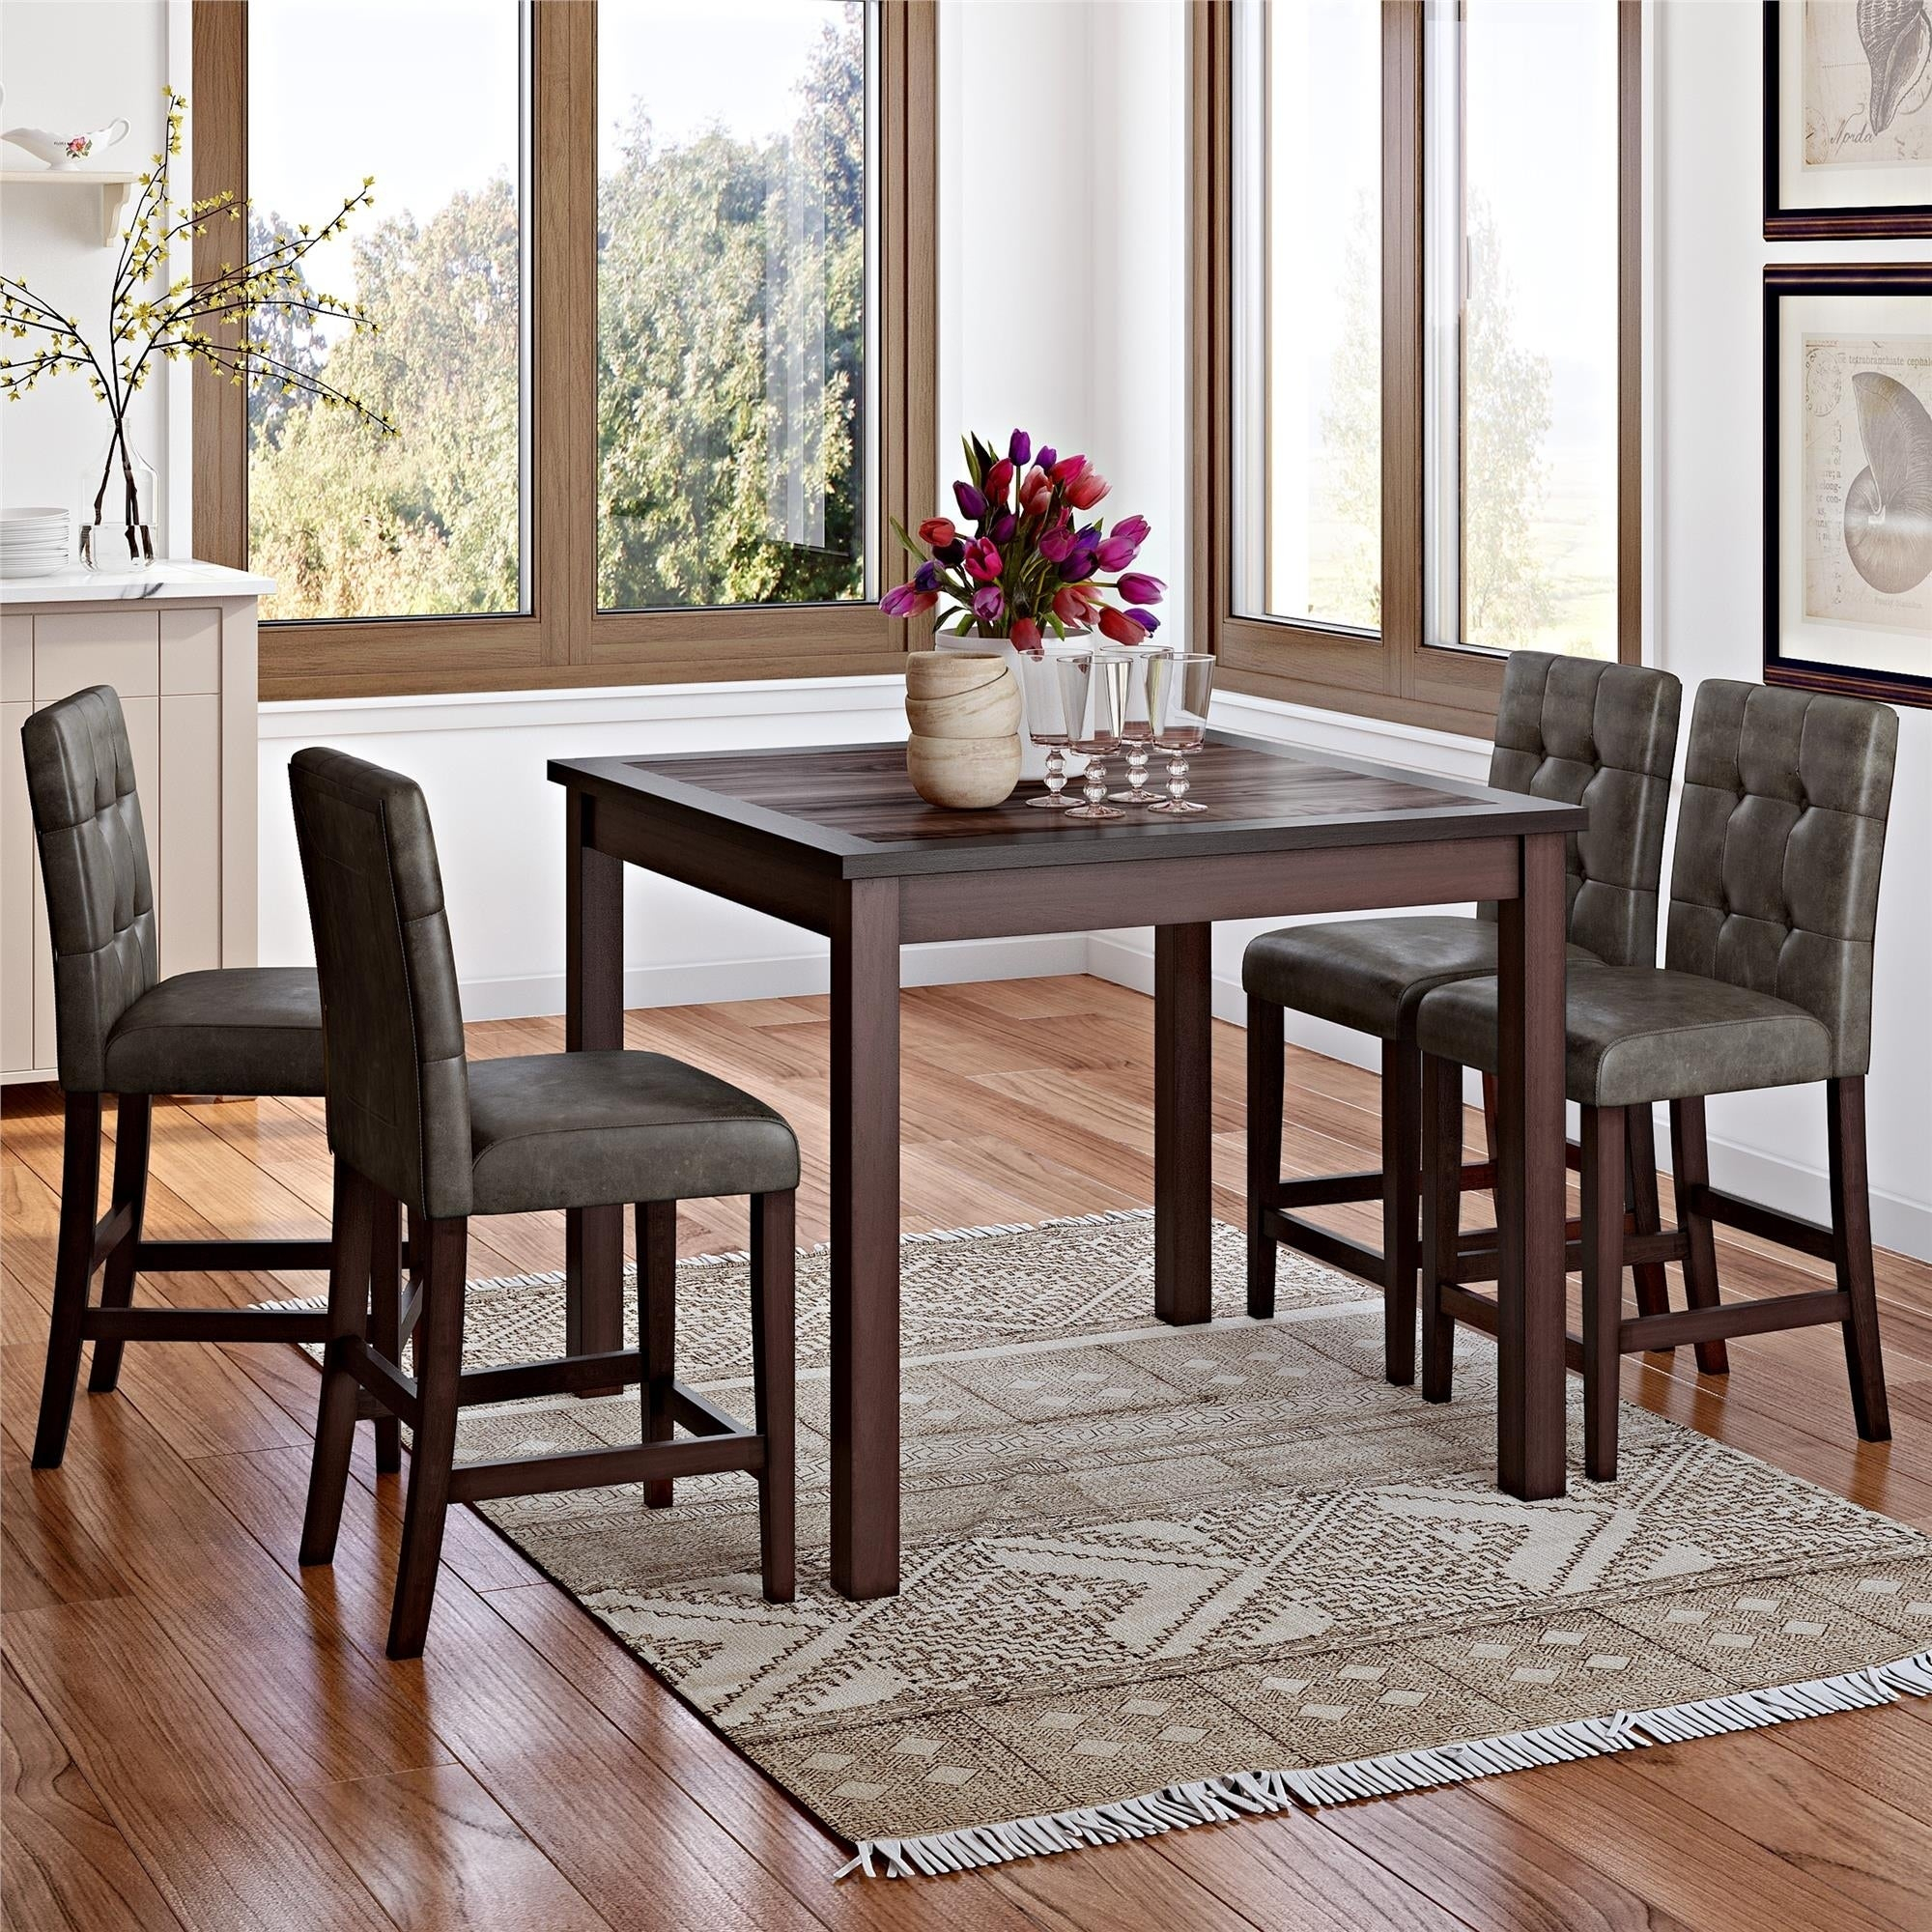 Gracewood Hollow Betancourt Espresso 5 Piece Counter Height Dining Set Pertaining To Best And Newest Bettencourt 3 Piece Counter Height Solid Wood Dining Sets (View 18 of 20)